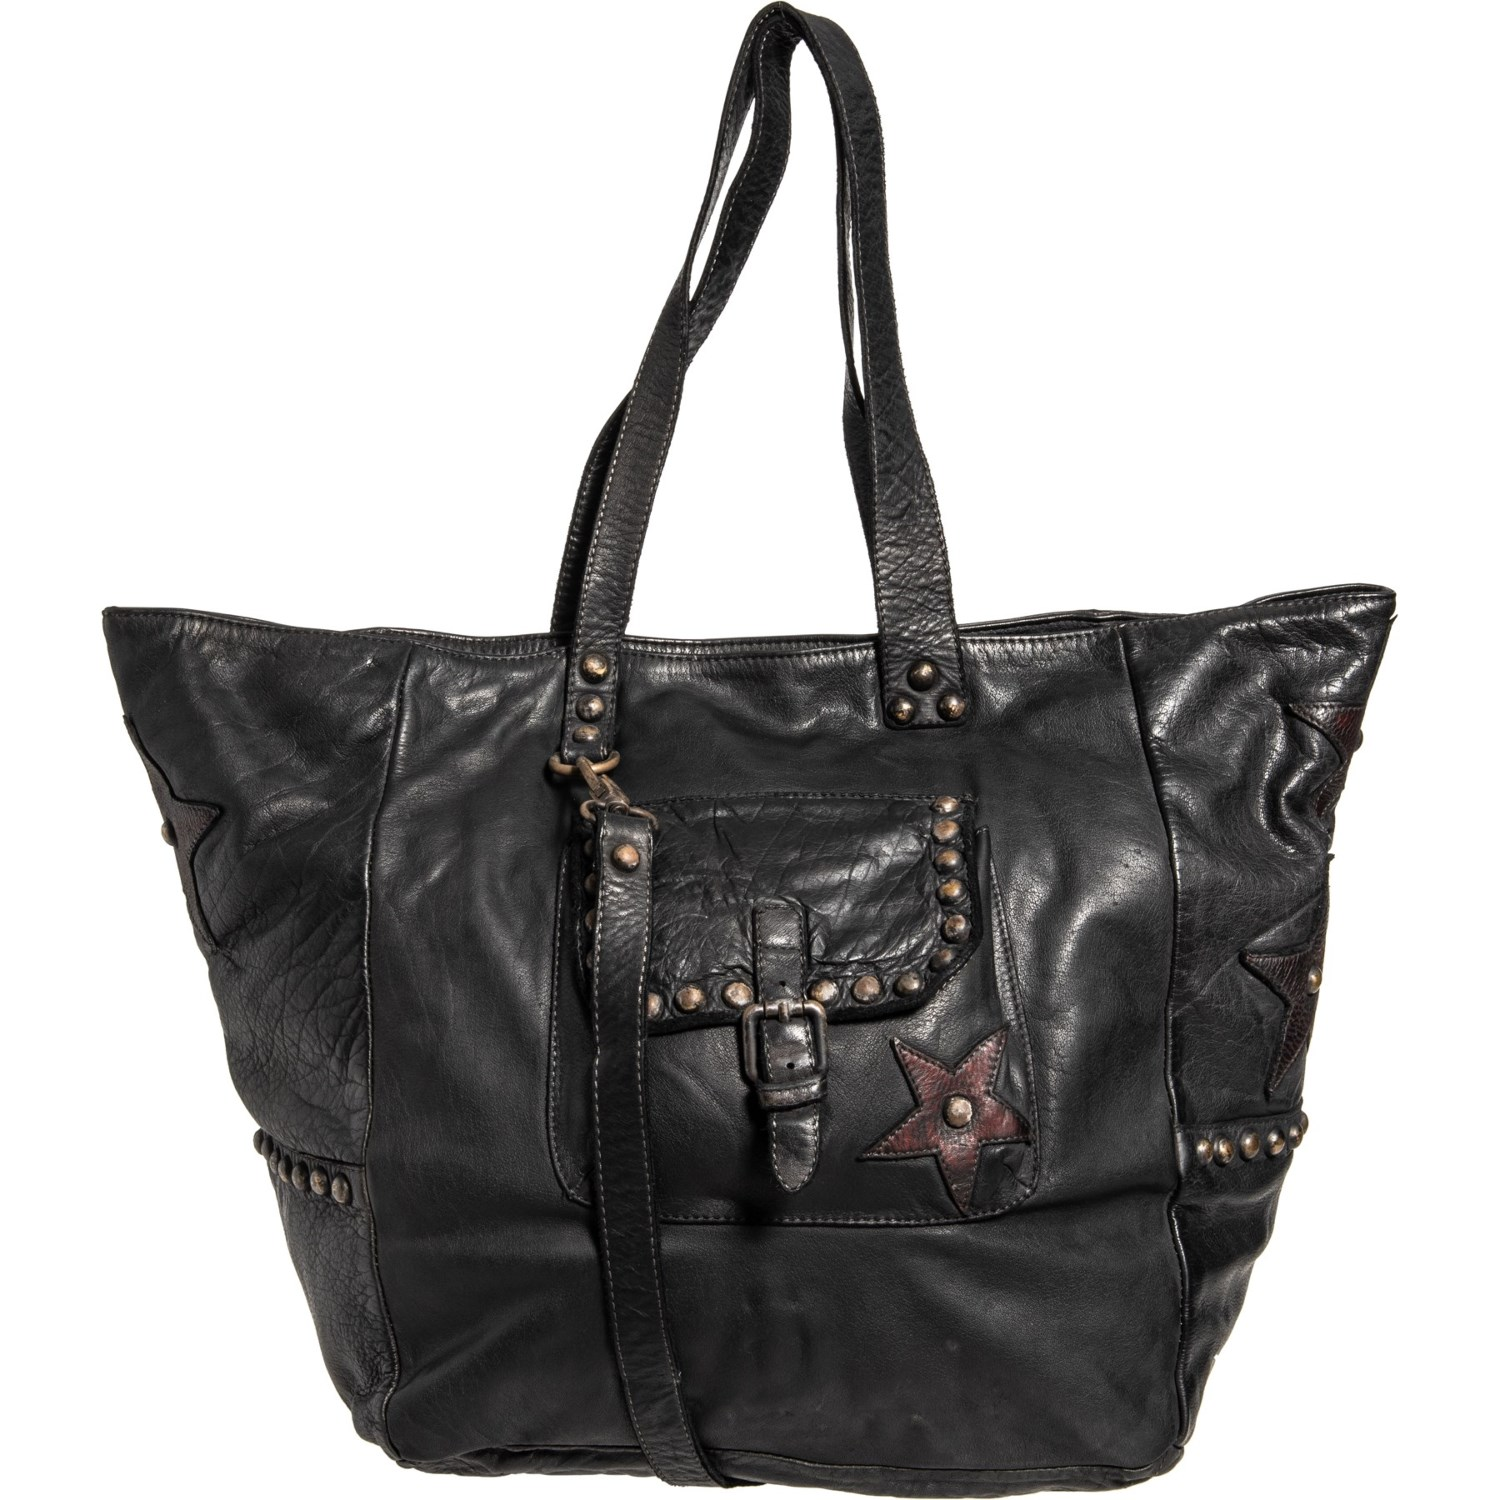 5062c3cadd9e Pulicati Made in Italy Front Pocket Large Tote Bag (For Women ...